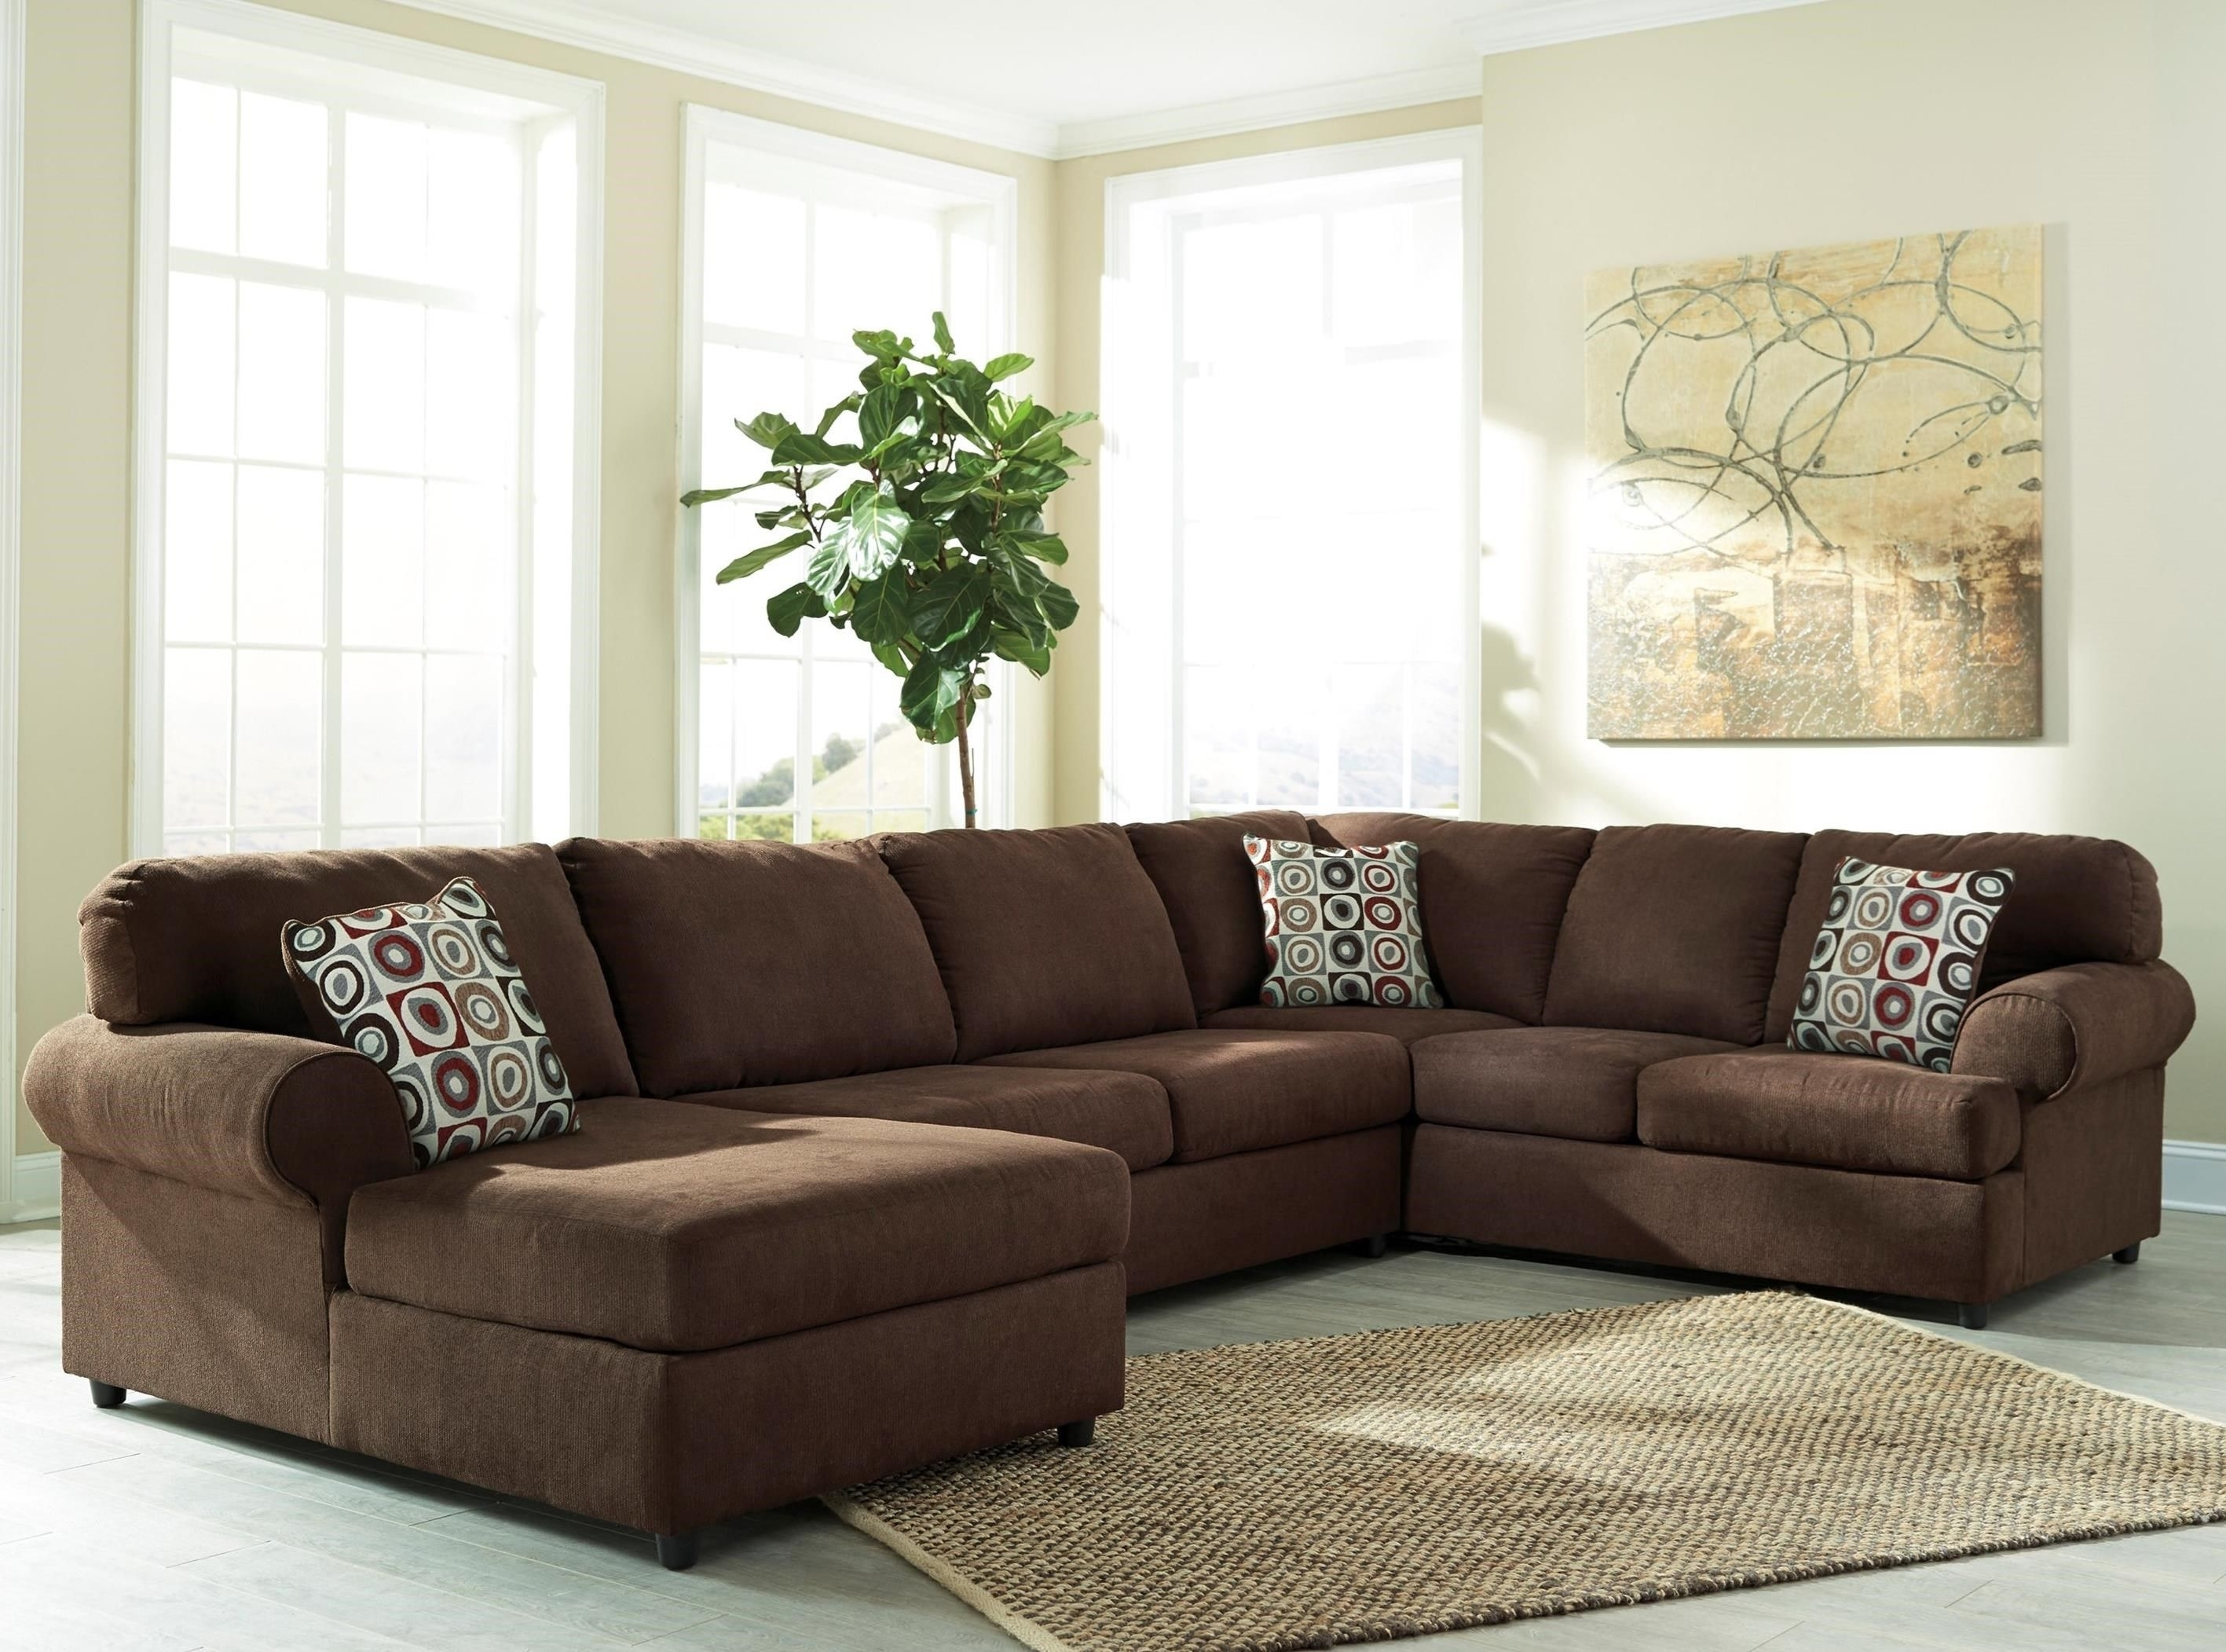 Jayceon Steel 3 Pc Laf Corner Chaise Sectional T Within Malbry Point 3 Piece Sectionals With Laf Chaise (Image 15 of 25)